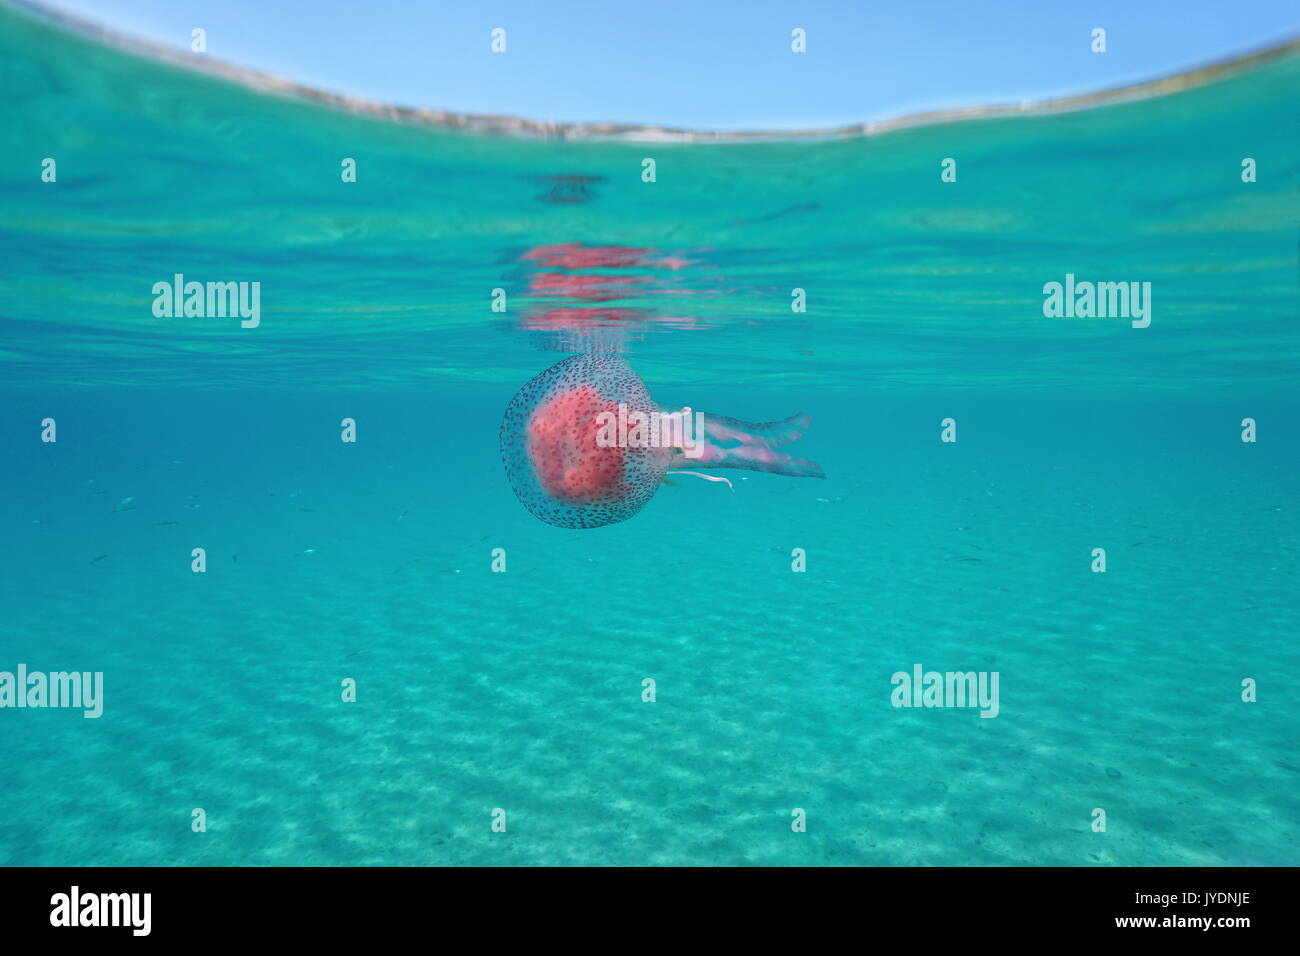 A mauve stinger jellyfish Pelagia noctiluca underwater below the water surface, Mediterranean sea, Spain, Costa Brava, Girona, Catalonia - Stock Image